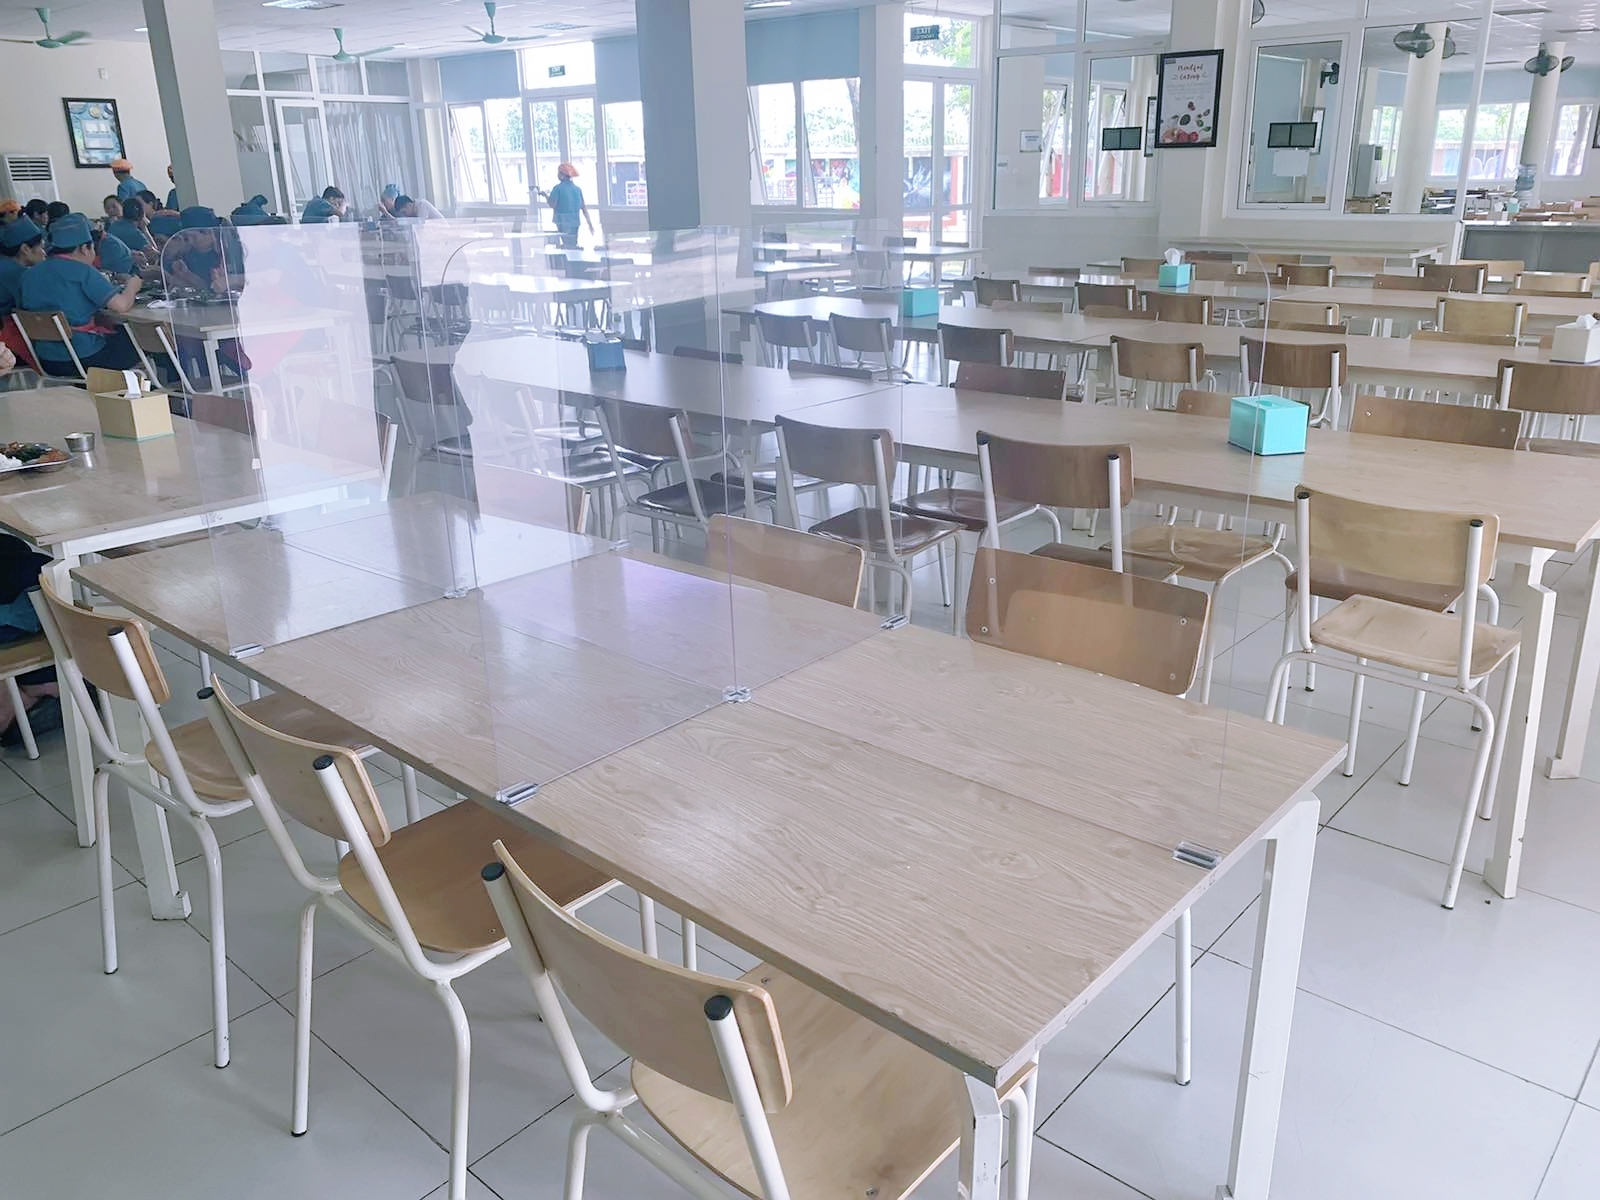 covid 19 combat table partitions installed in schools to curb covid 19